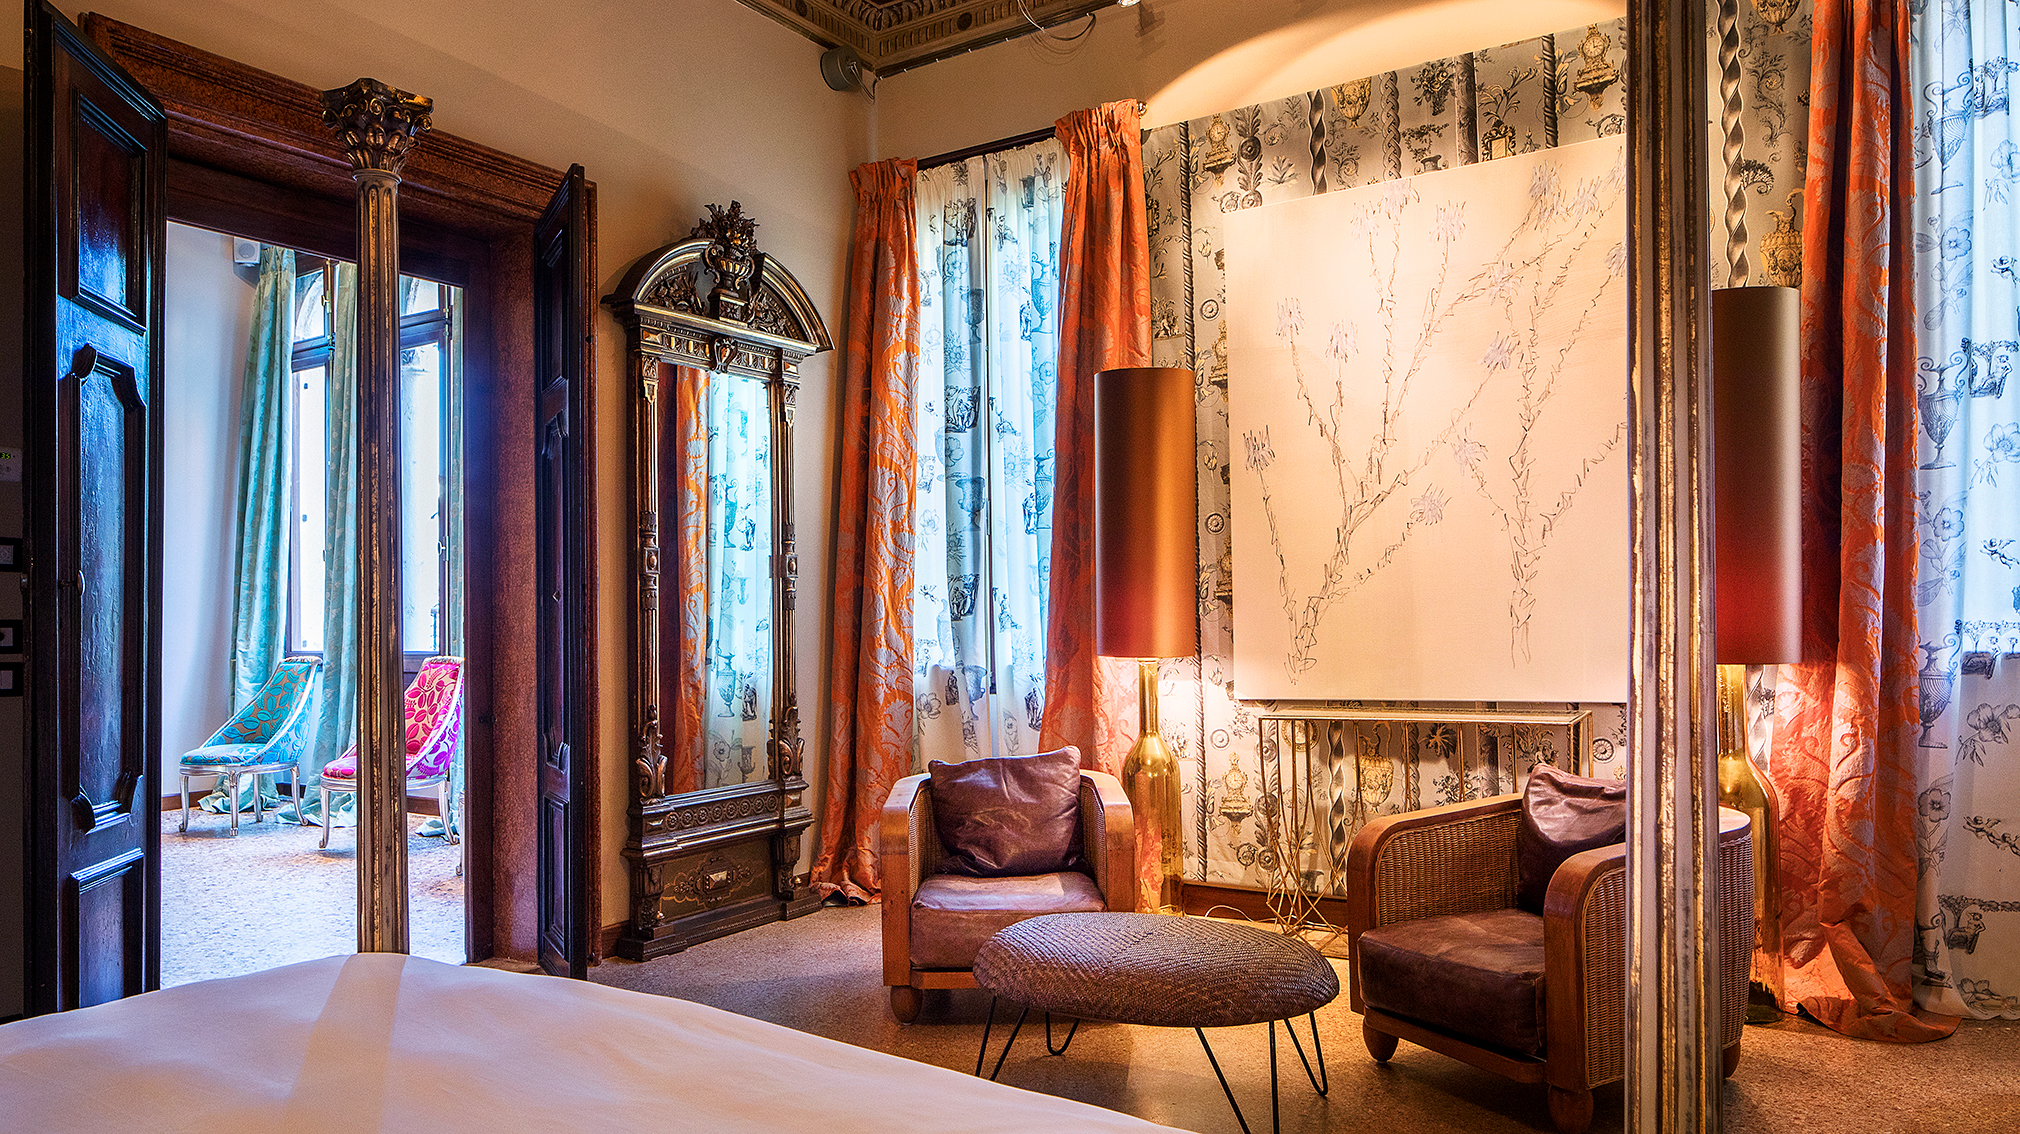 hotel heureka, venice, italy, boutique, hotel, luxury travel, coco travel, design, interior